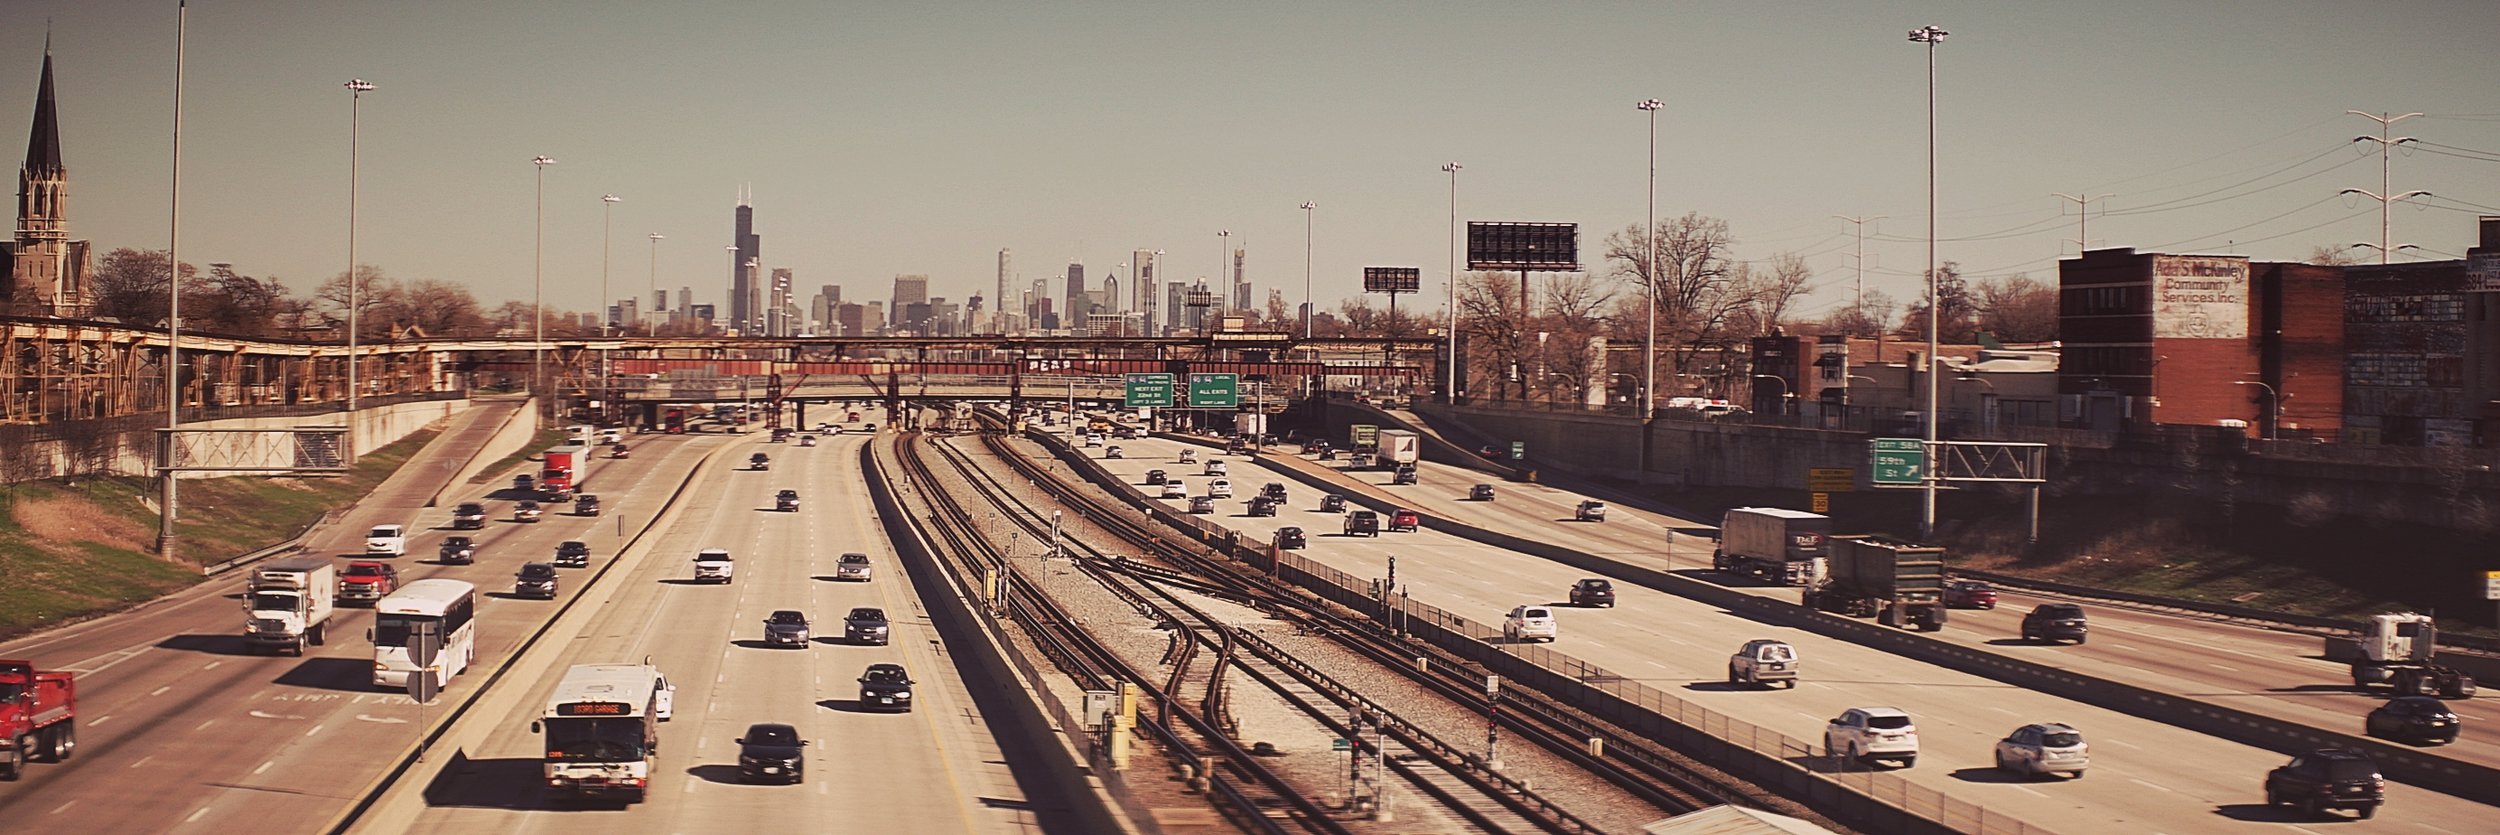 Lomo 75mm Anamorphic Lens | The Chicago skyline from the window of our westbound Amtrak sleeper. Stopped down to a T4 for this picture. - Photo by: Keith Nickoson